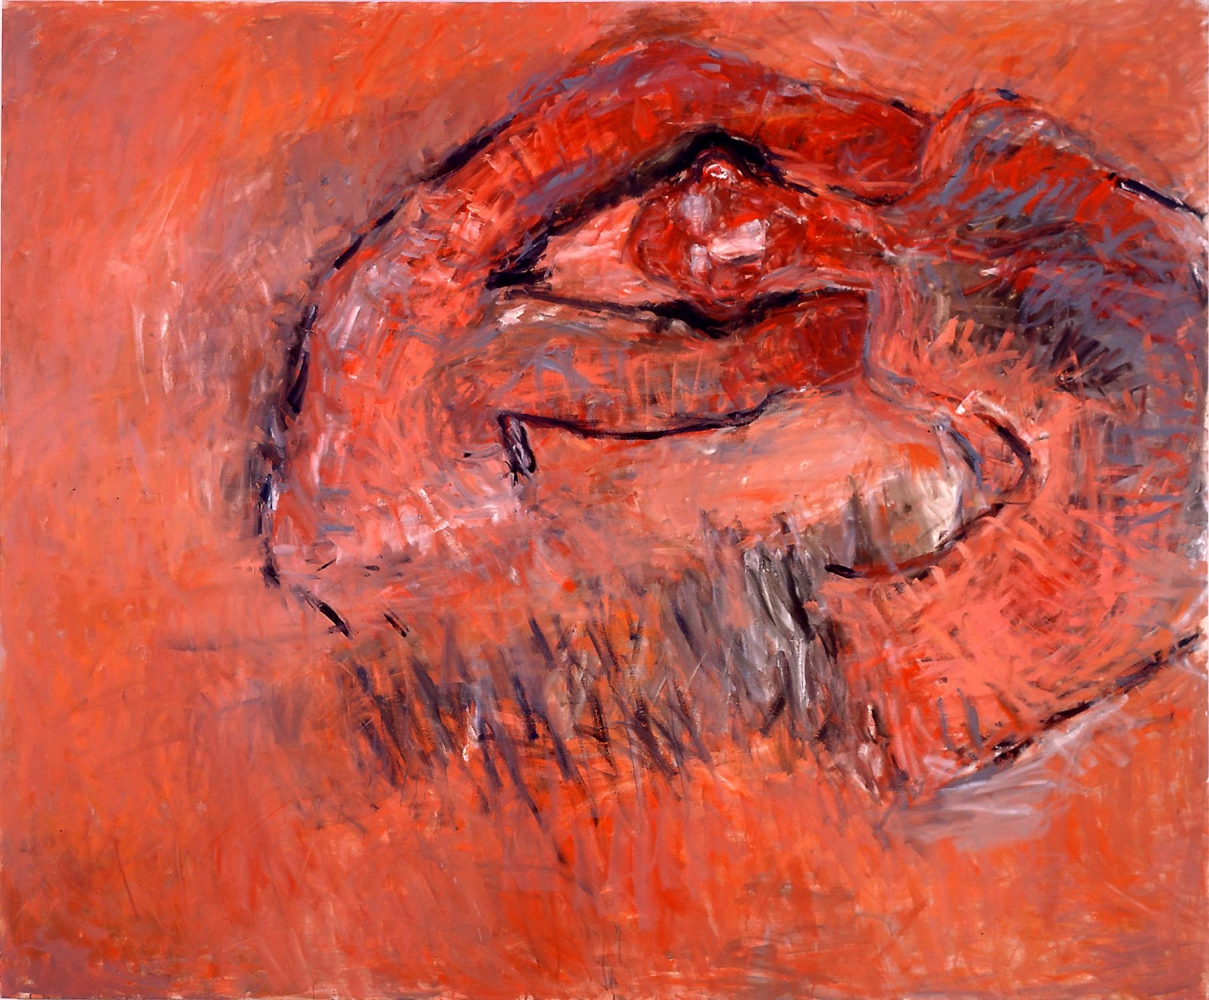 red-orange painting of an abstracted human figure contorted into a donut shape